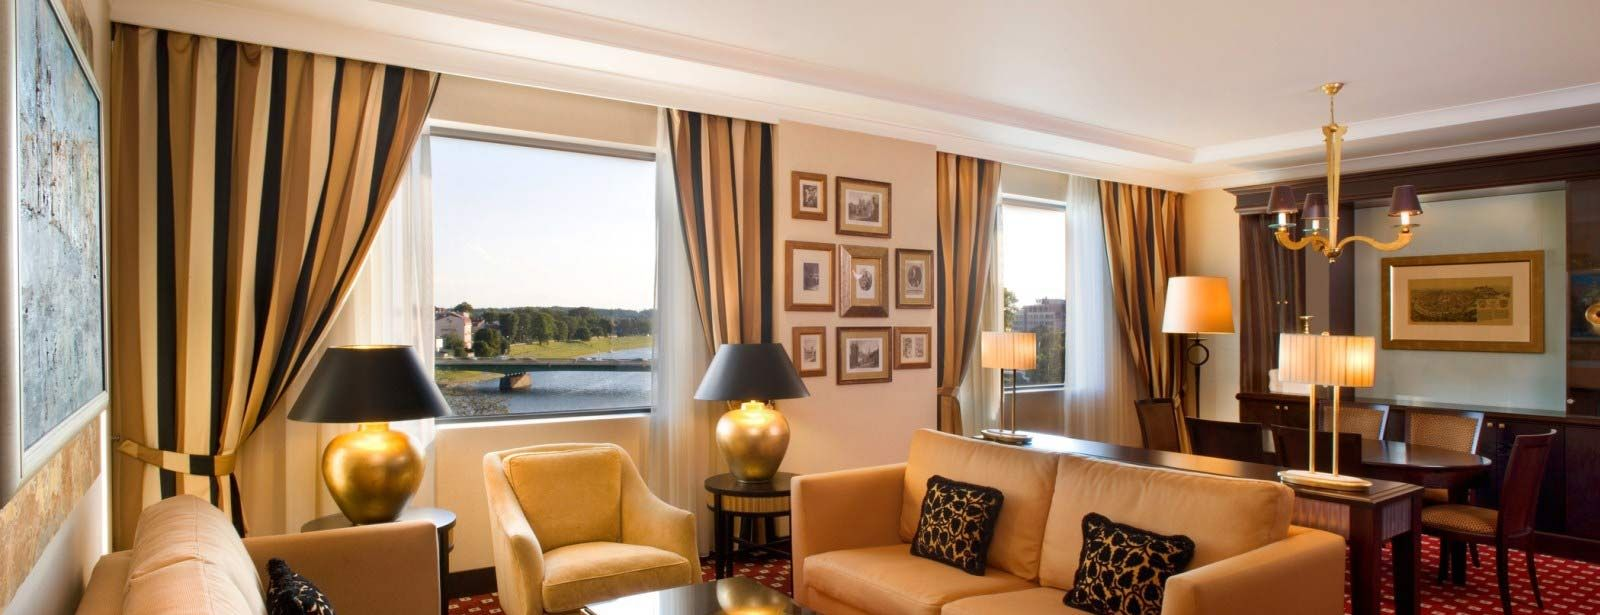 Royal Wawel Suite